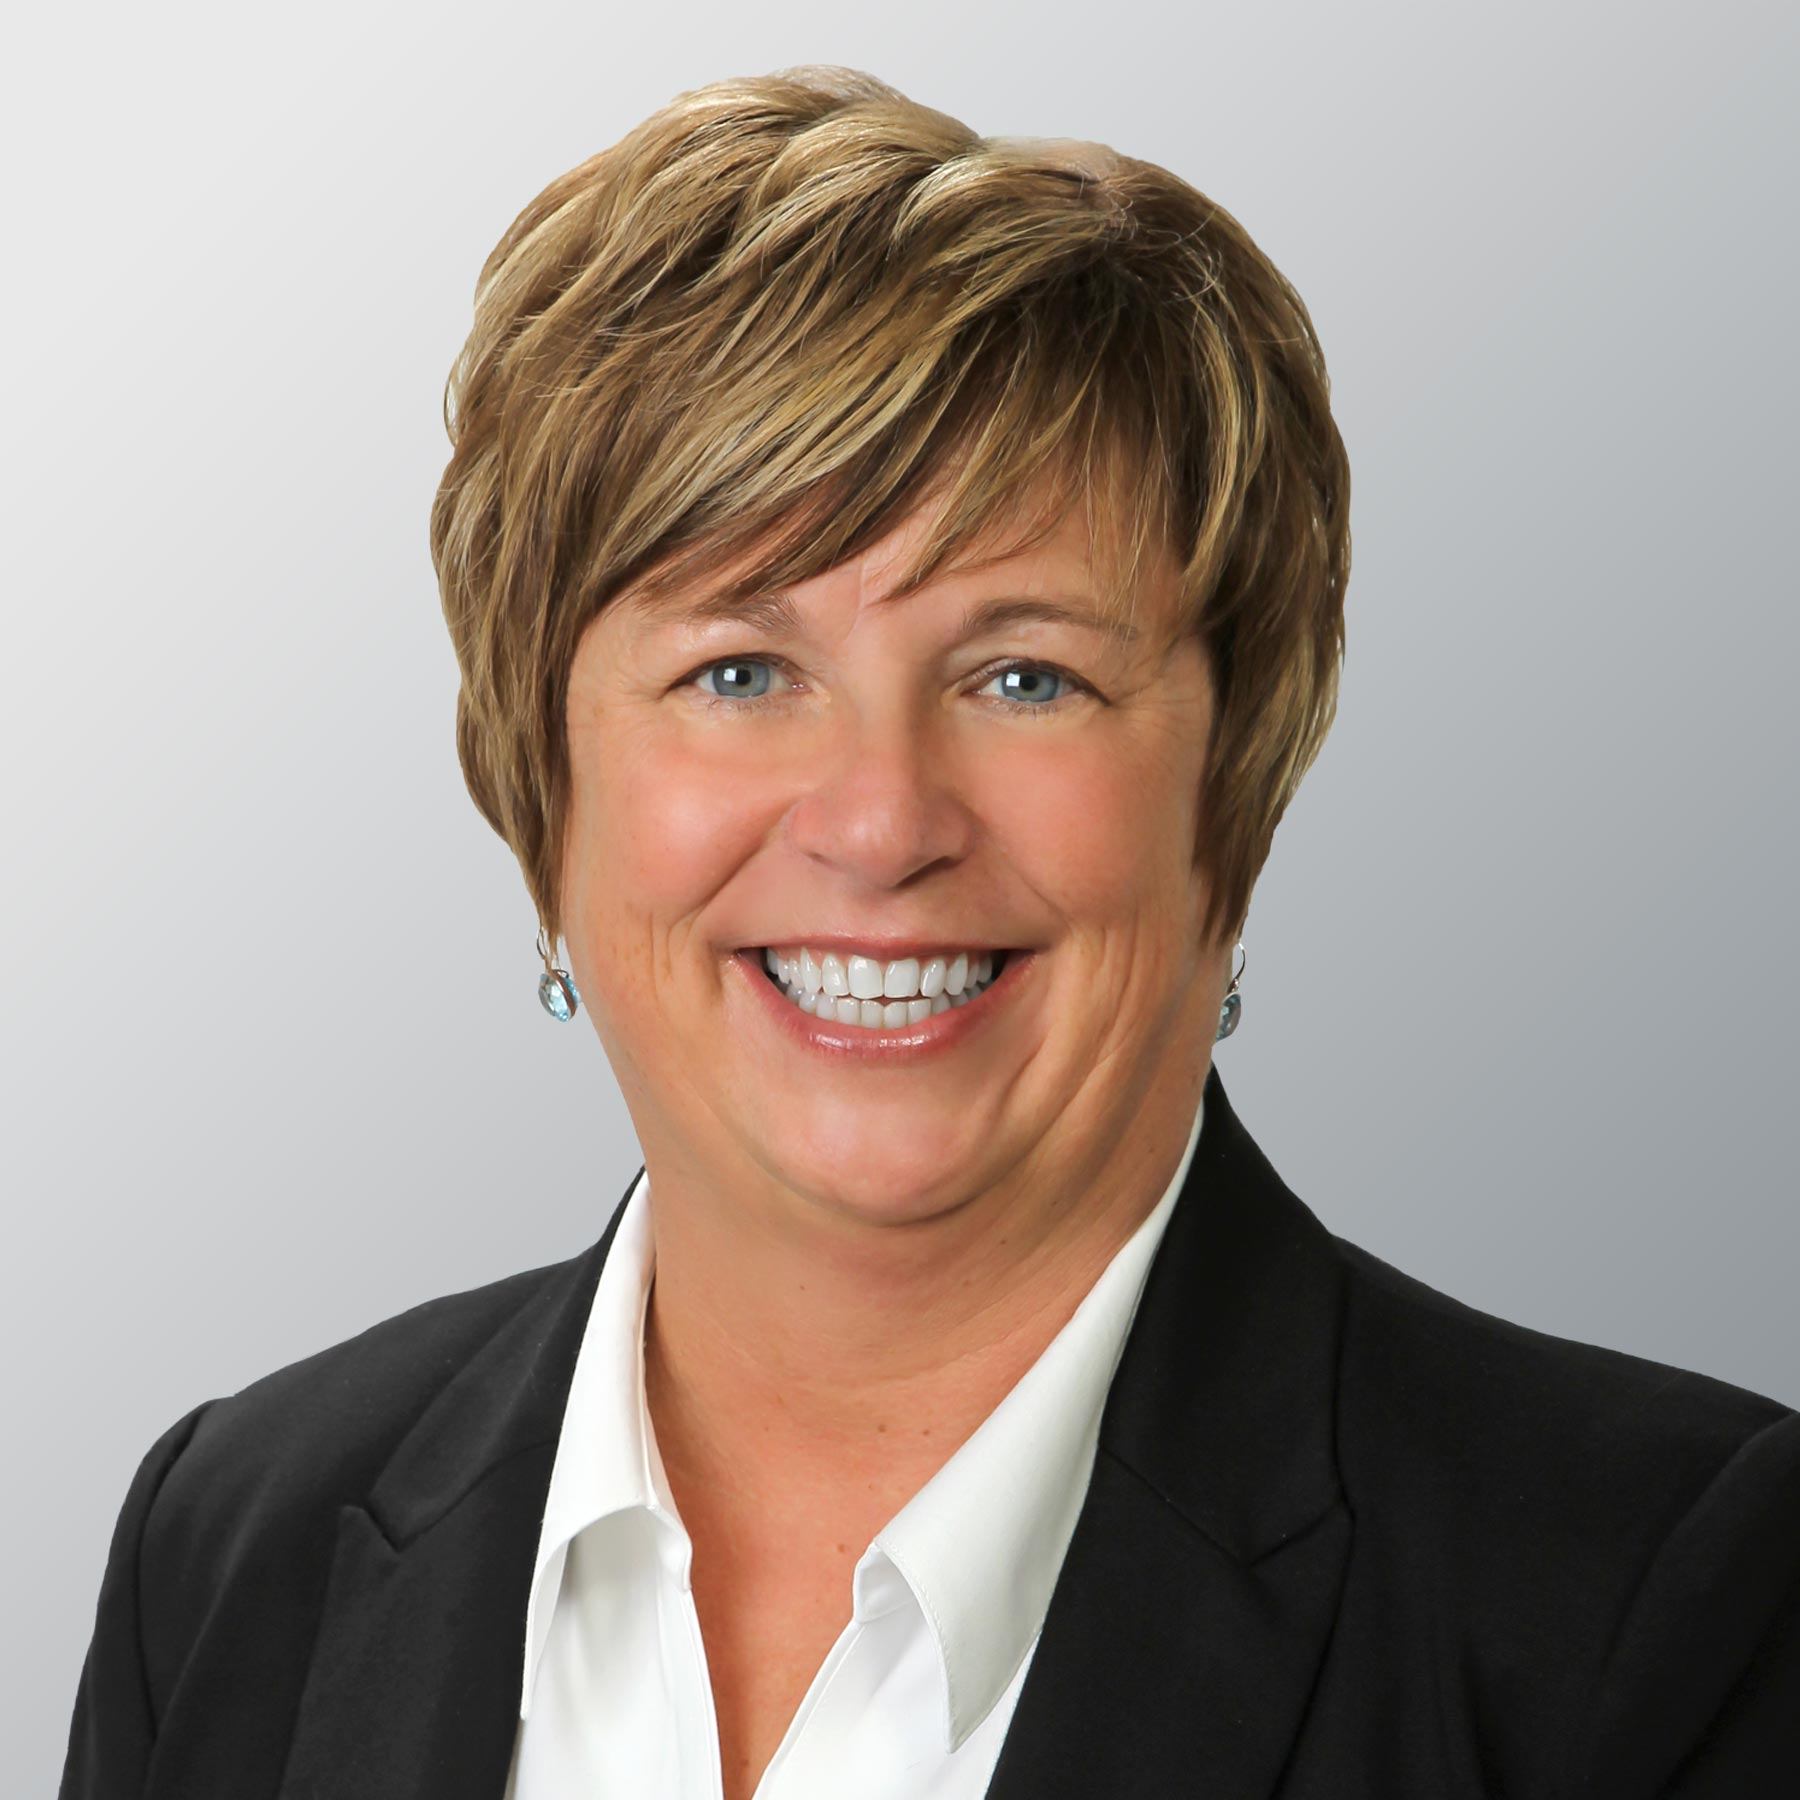 REMAX Plus Realty Louise Maddigan